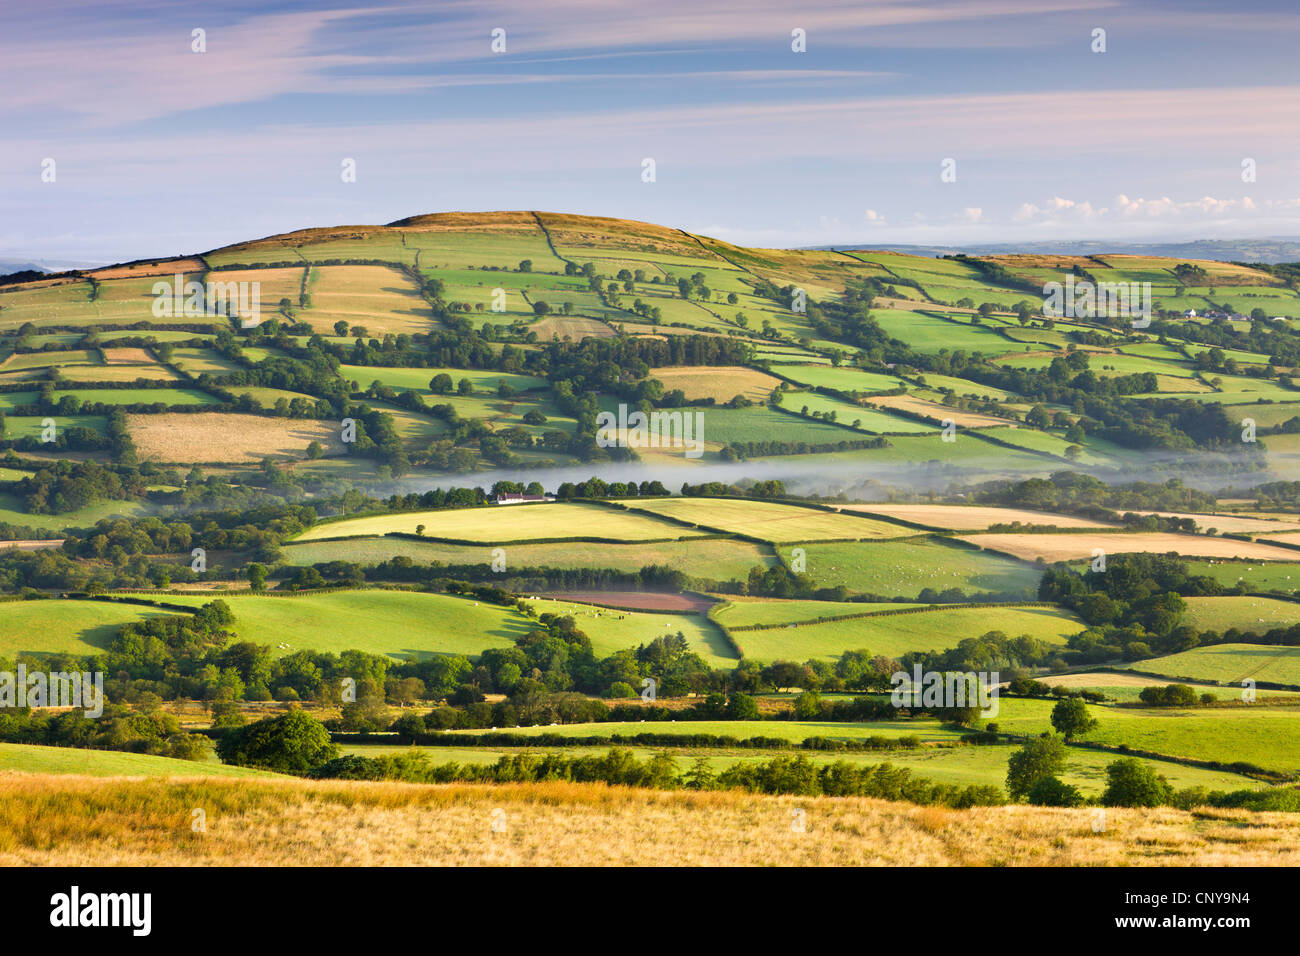 Patchwork des champs et campagne vallonnée, parc national de Brecon Beacons, Carmarthenshire, Pays de Galles, Photo Stock